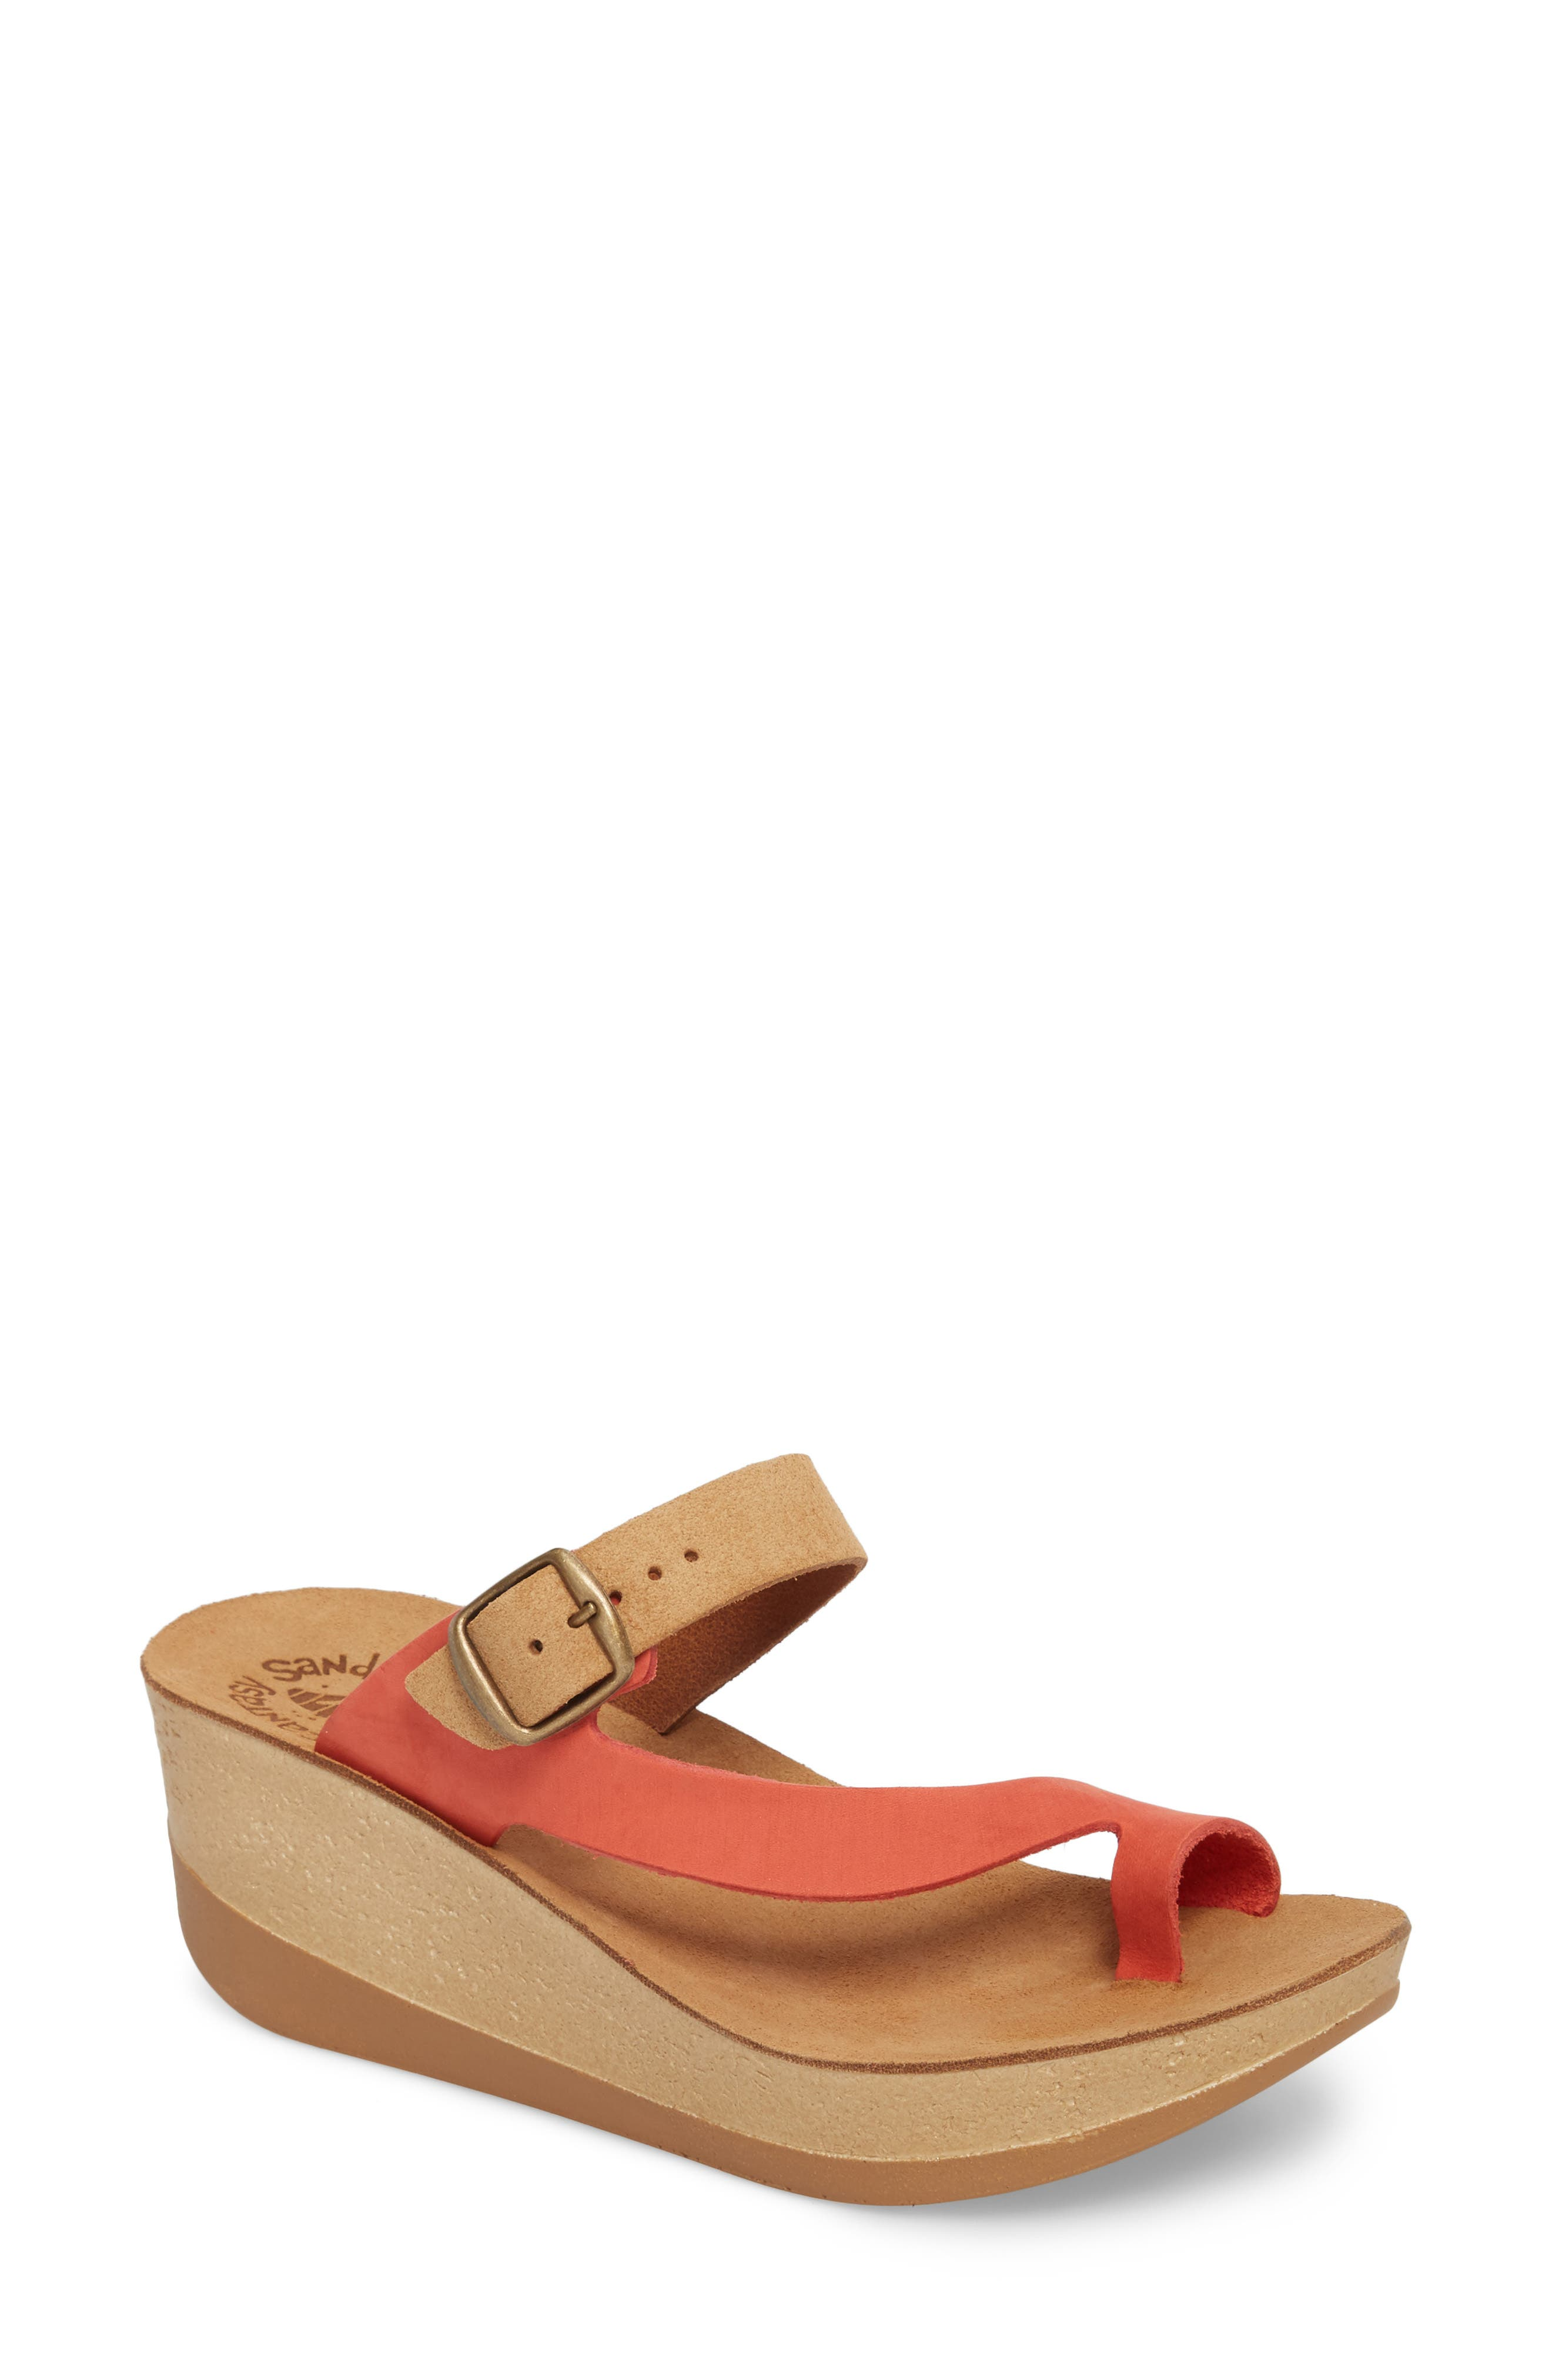 Felisa Wedge Sandal,                         Main,                         color, Cuoio Red Leather